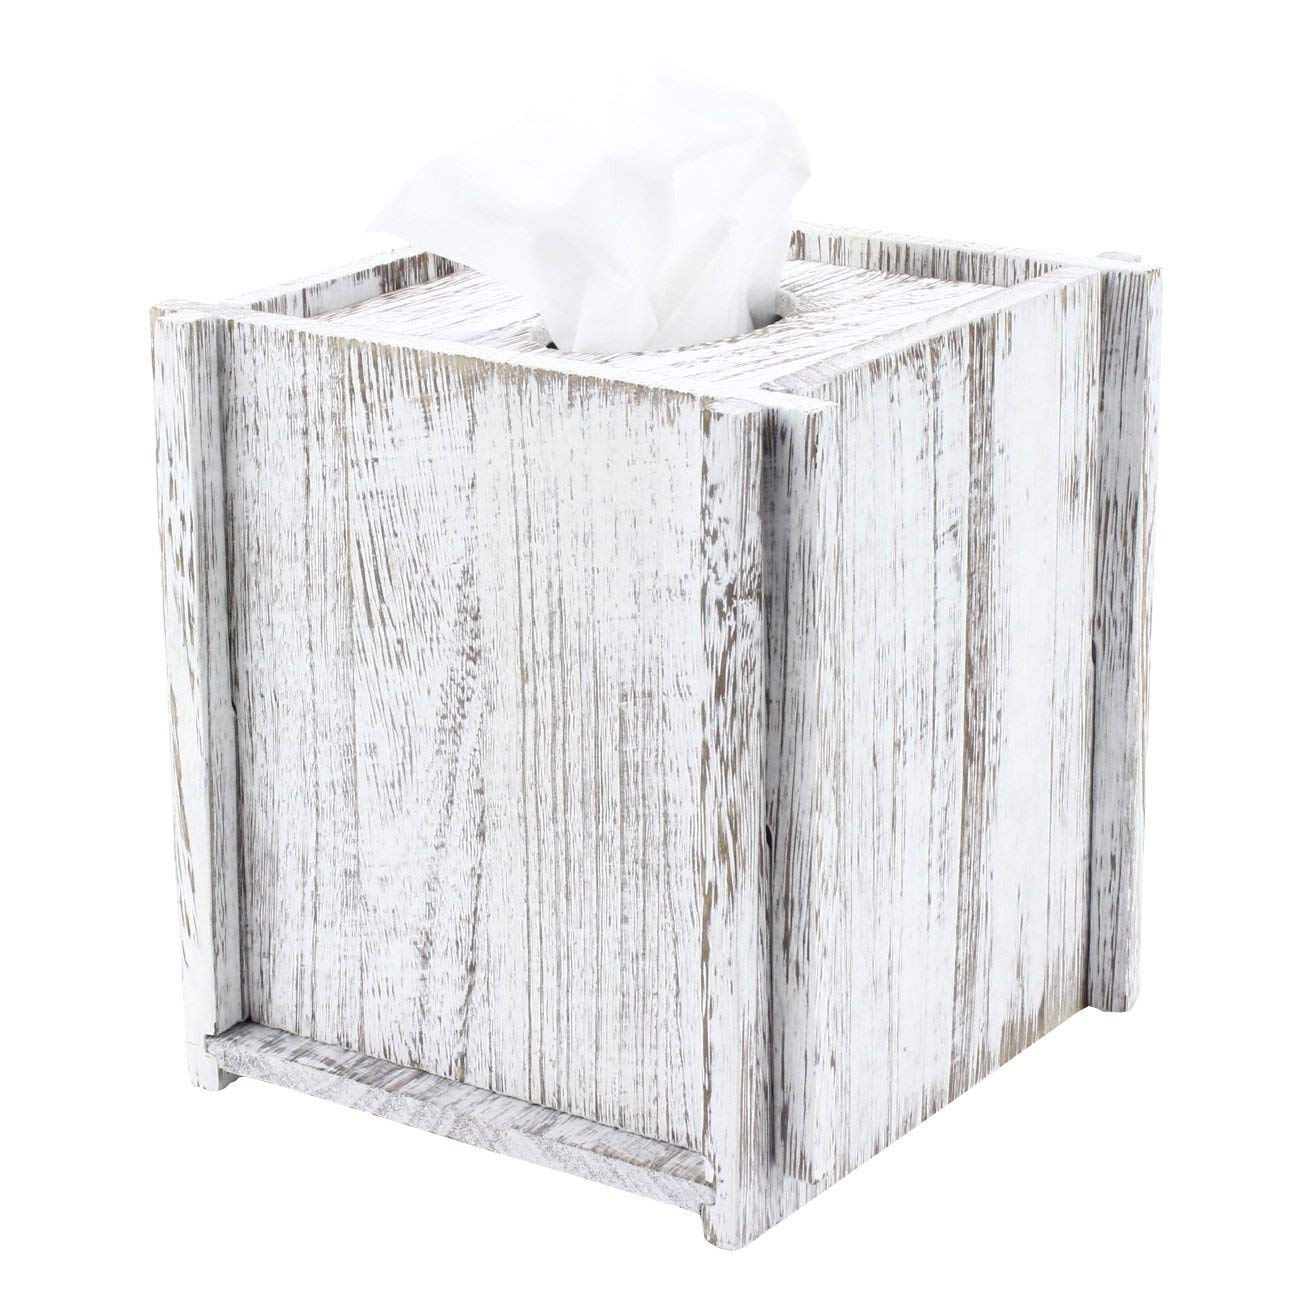 Comtelek Tissue Box Cover Square Tissue Holder Wooden Rustic Torched Bathroom Facial Tissue Dispenser with Slide-Out Bottom Panel White Novelty Splicing Napkin Holder (Square) by Comtelek